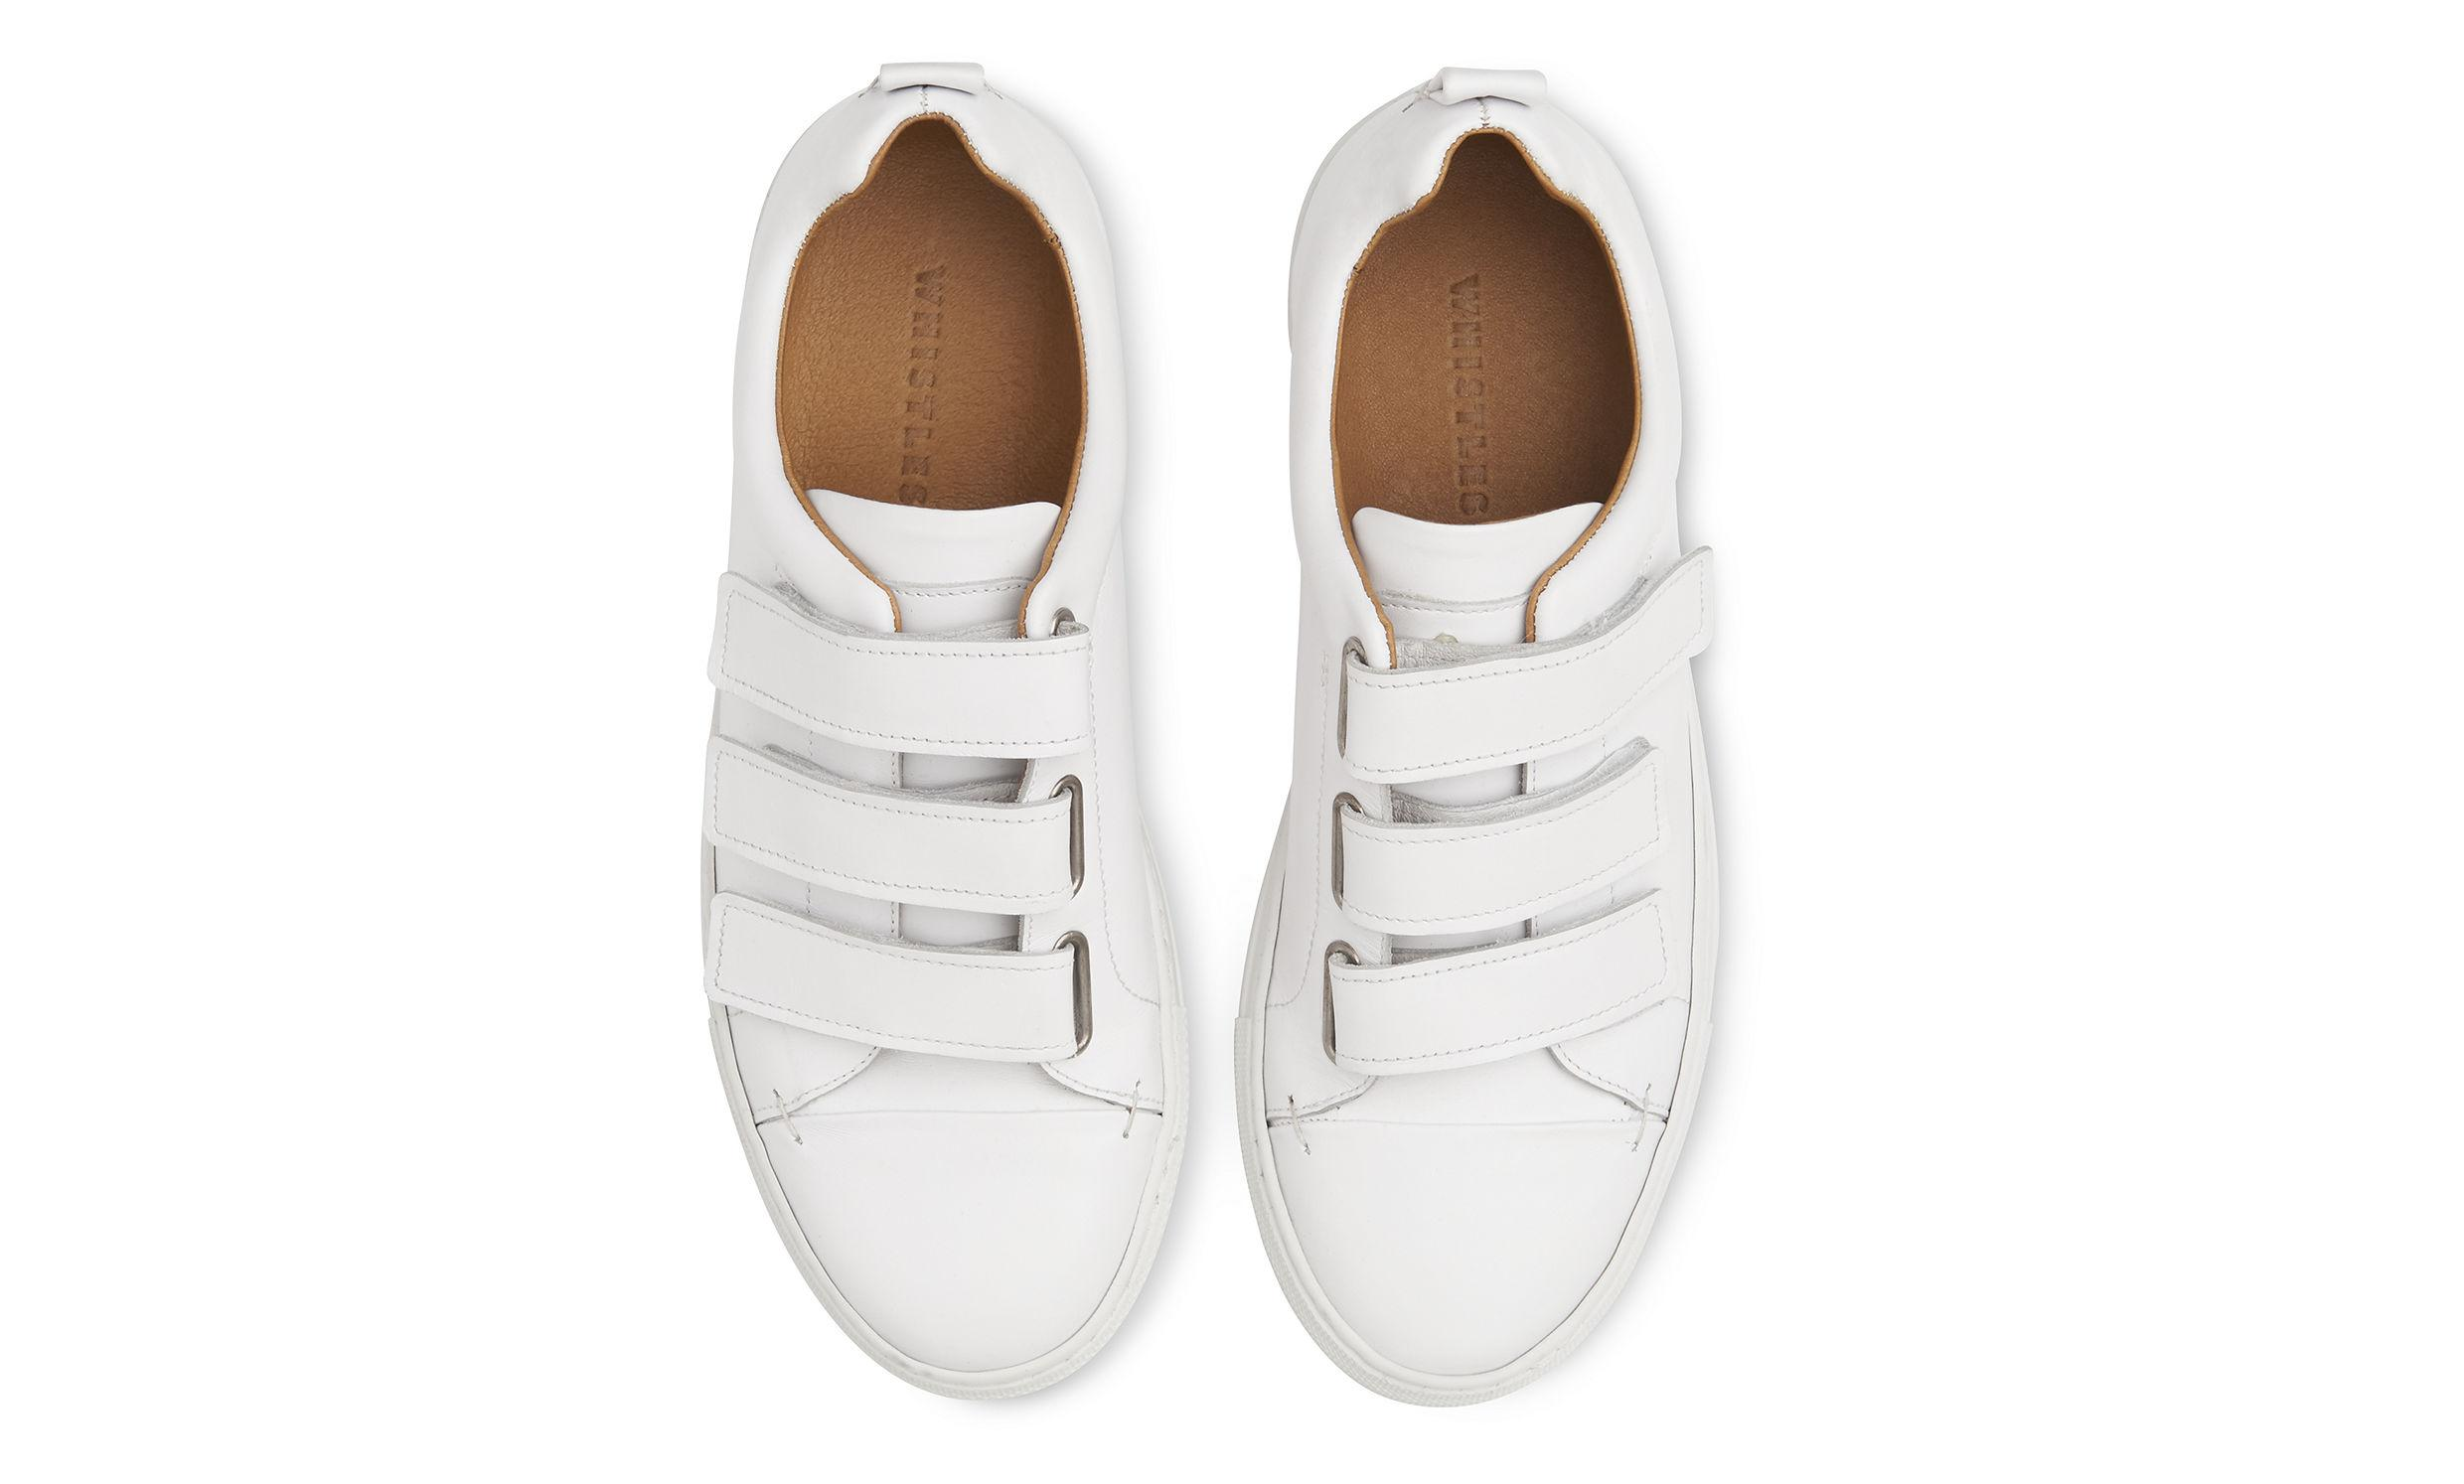 Whistles Aith Three Strap Trainer in White